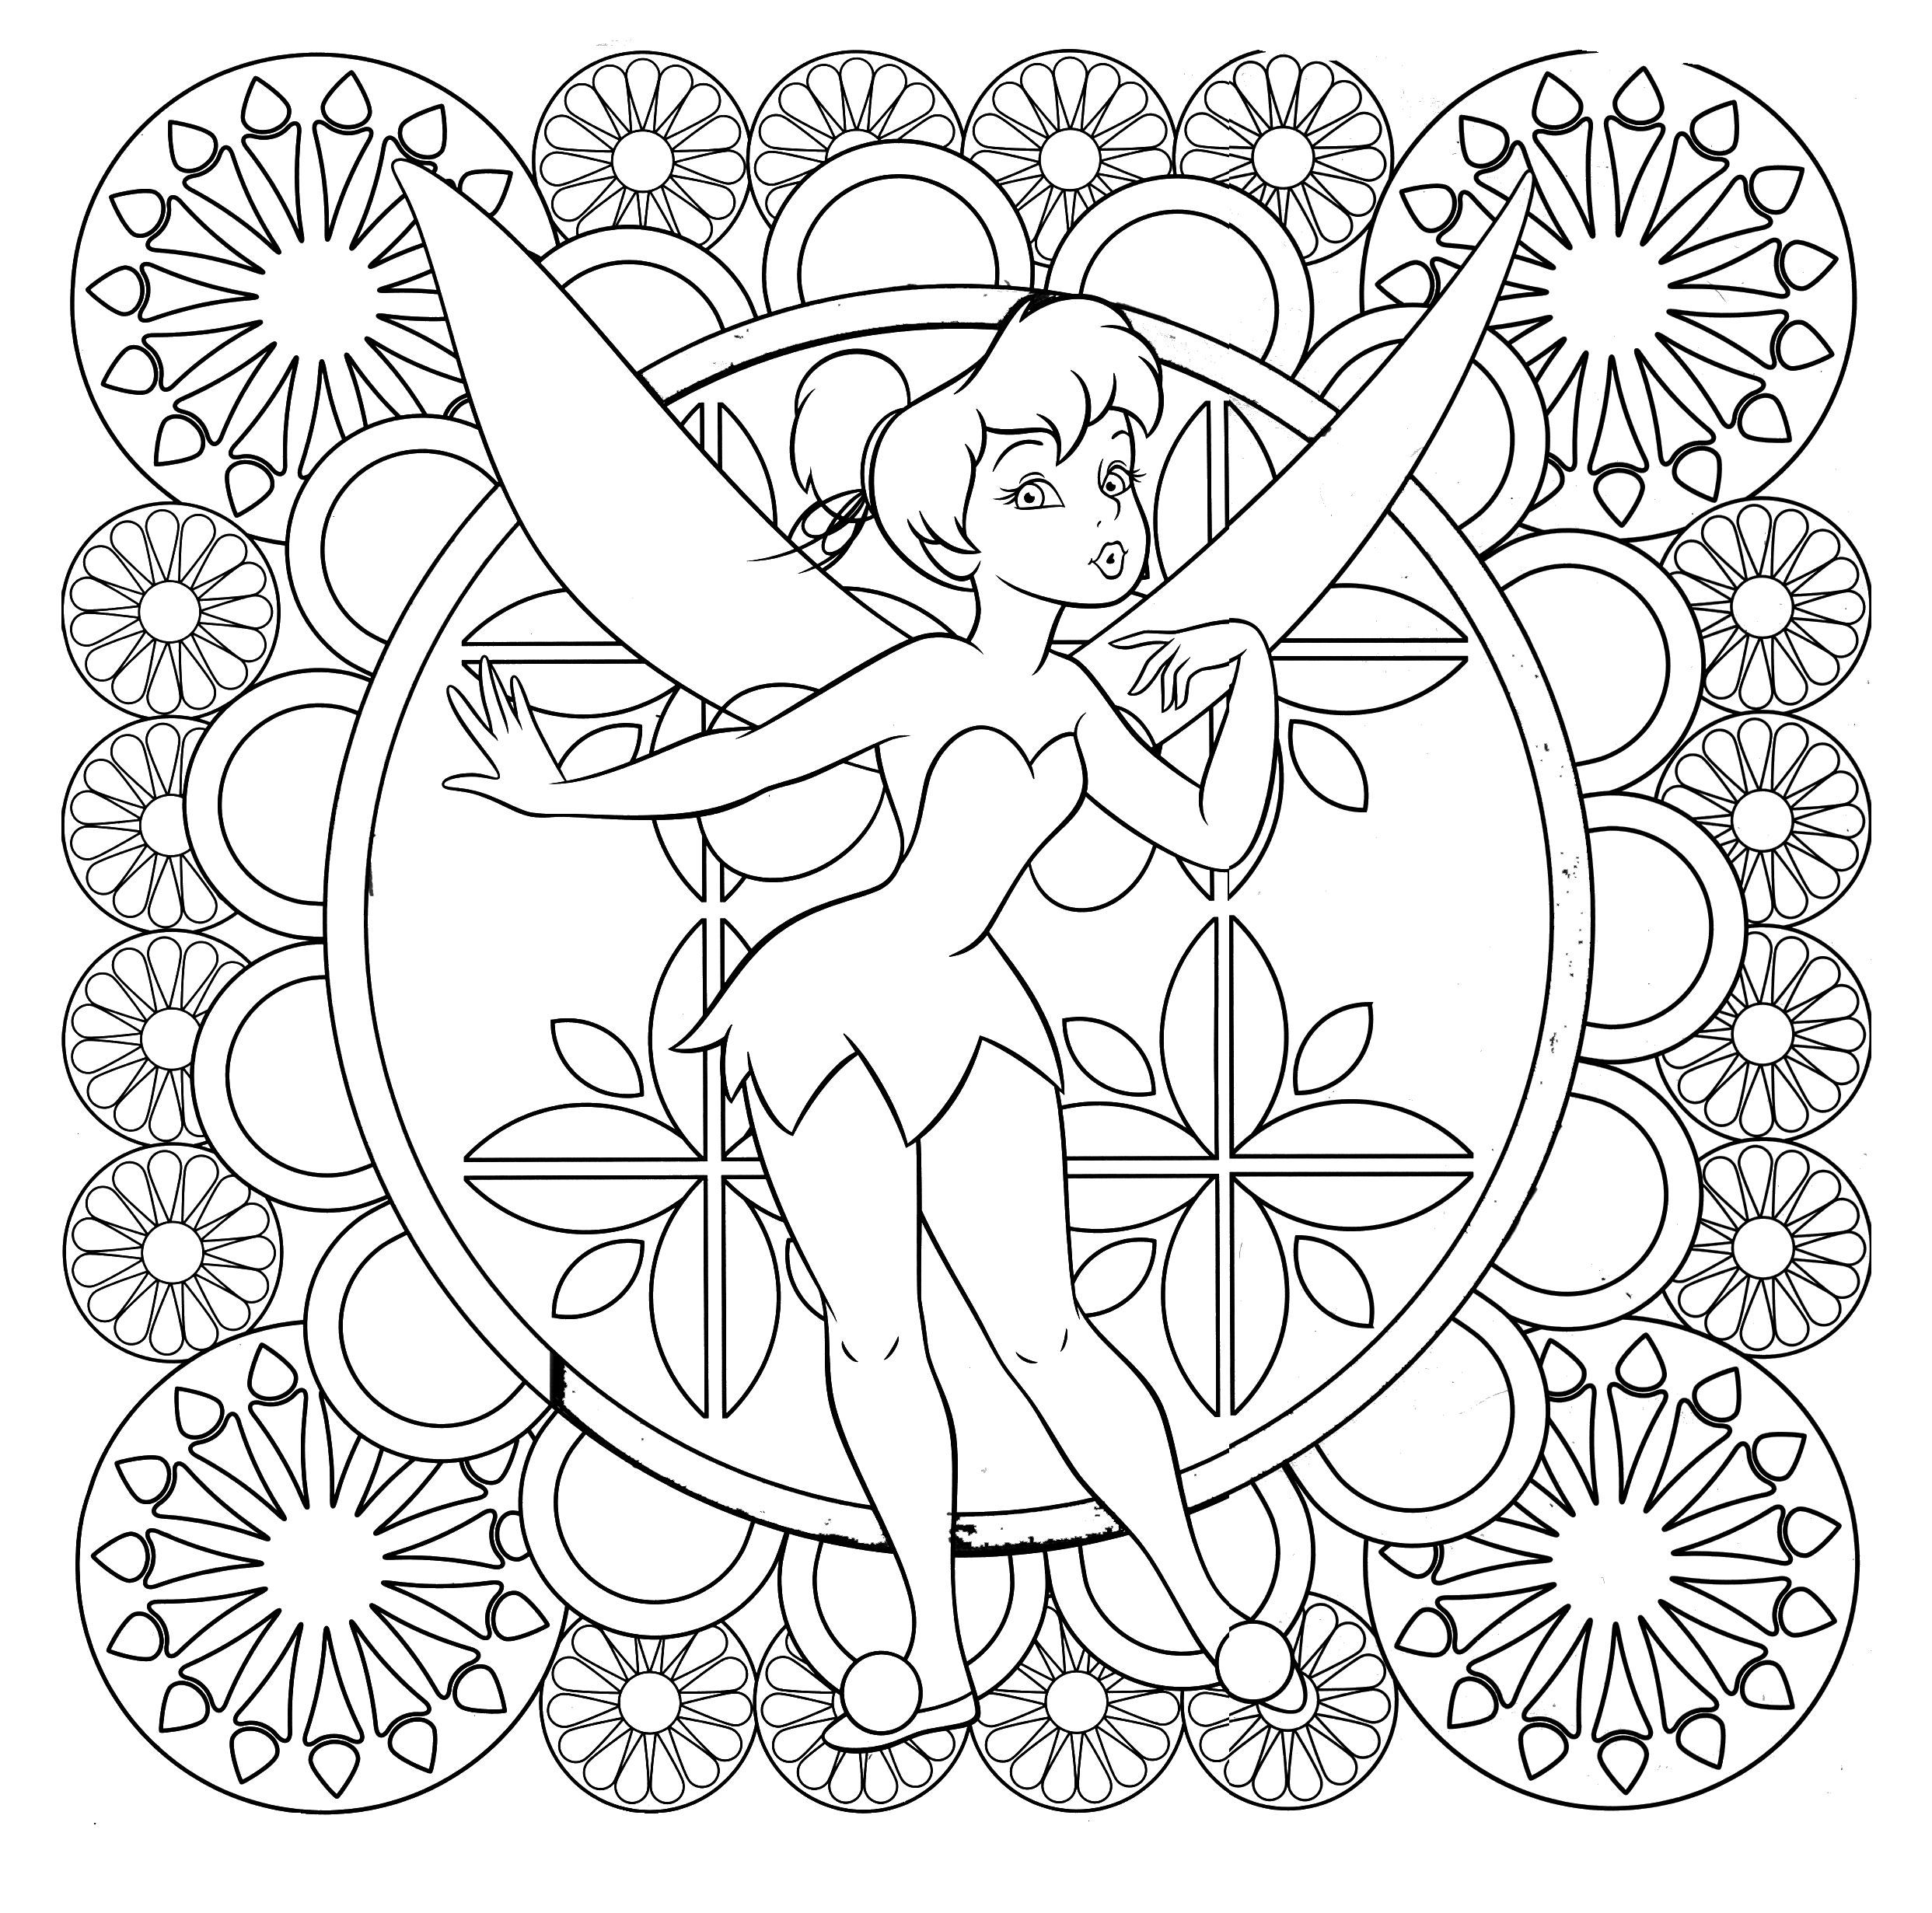 Tinkerbell Difficult Coloring Page Disney coloring pages